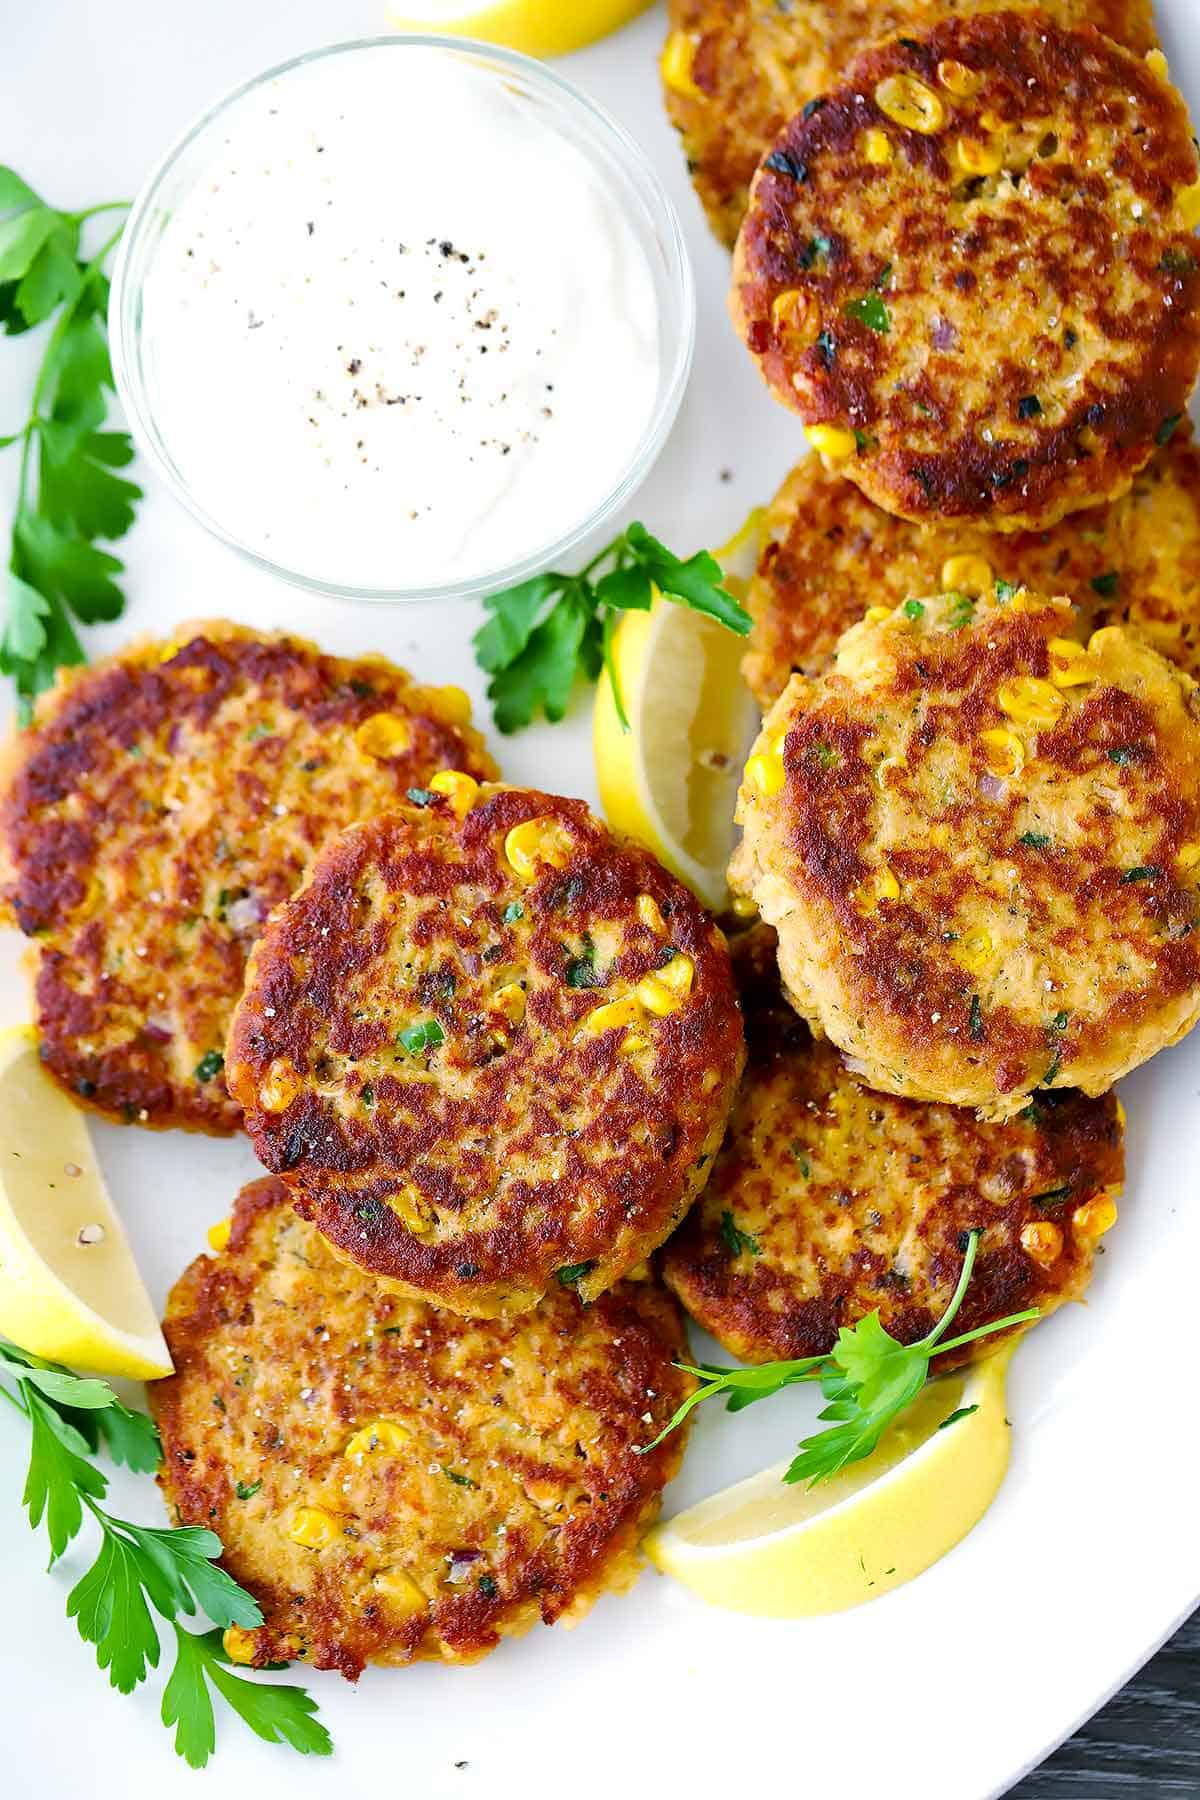 Salmon croquettes with creamy lemon sauce on a white platter.